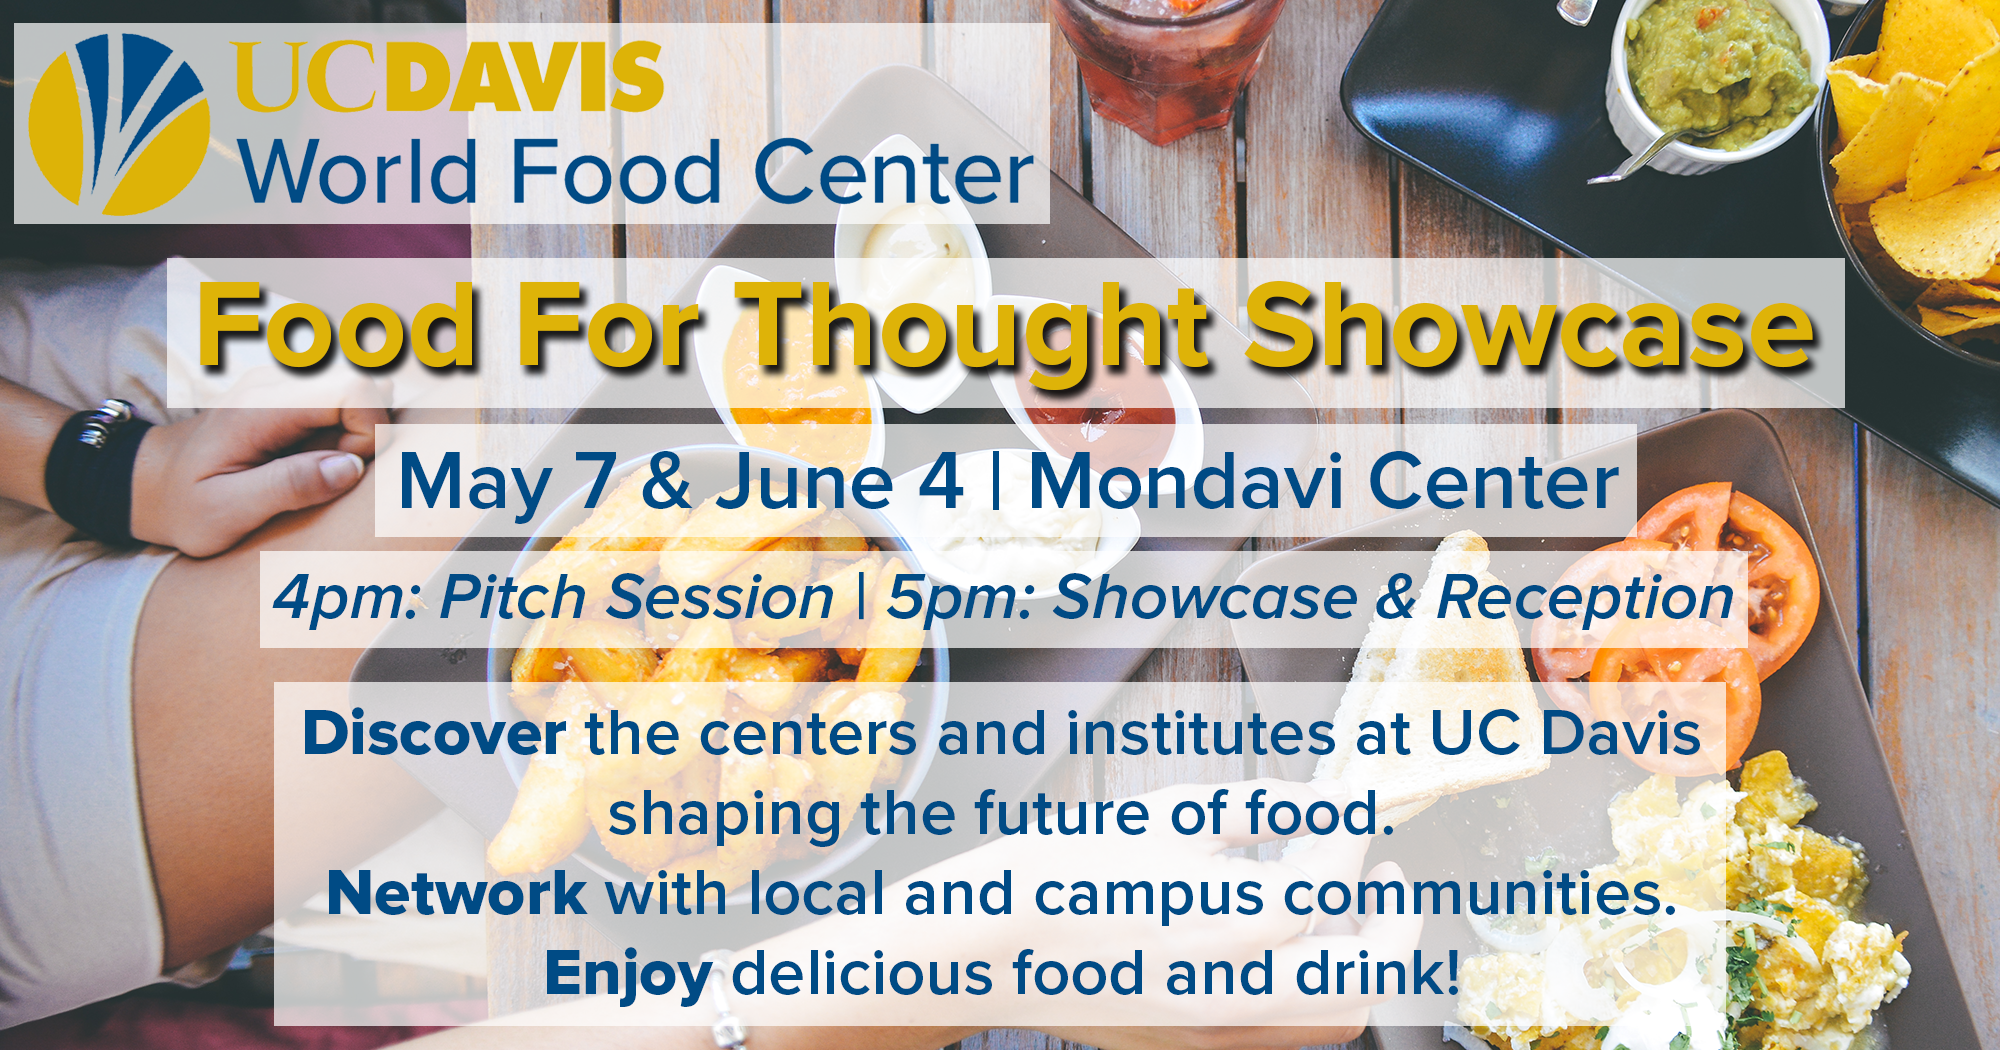 Food For Thought Showcase